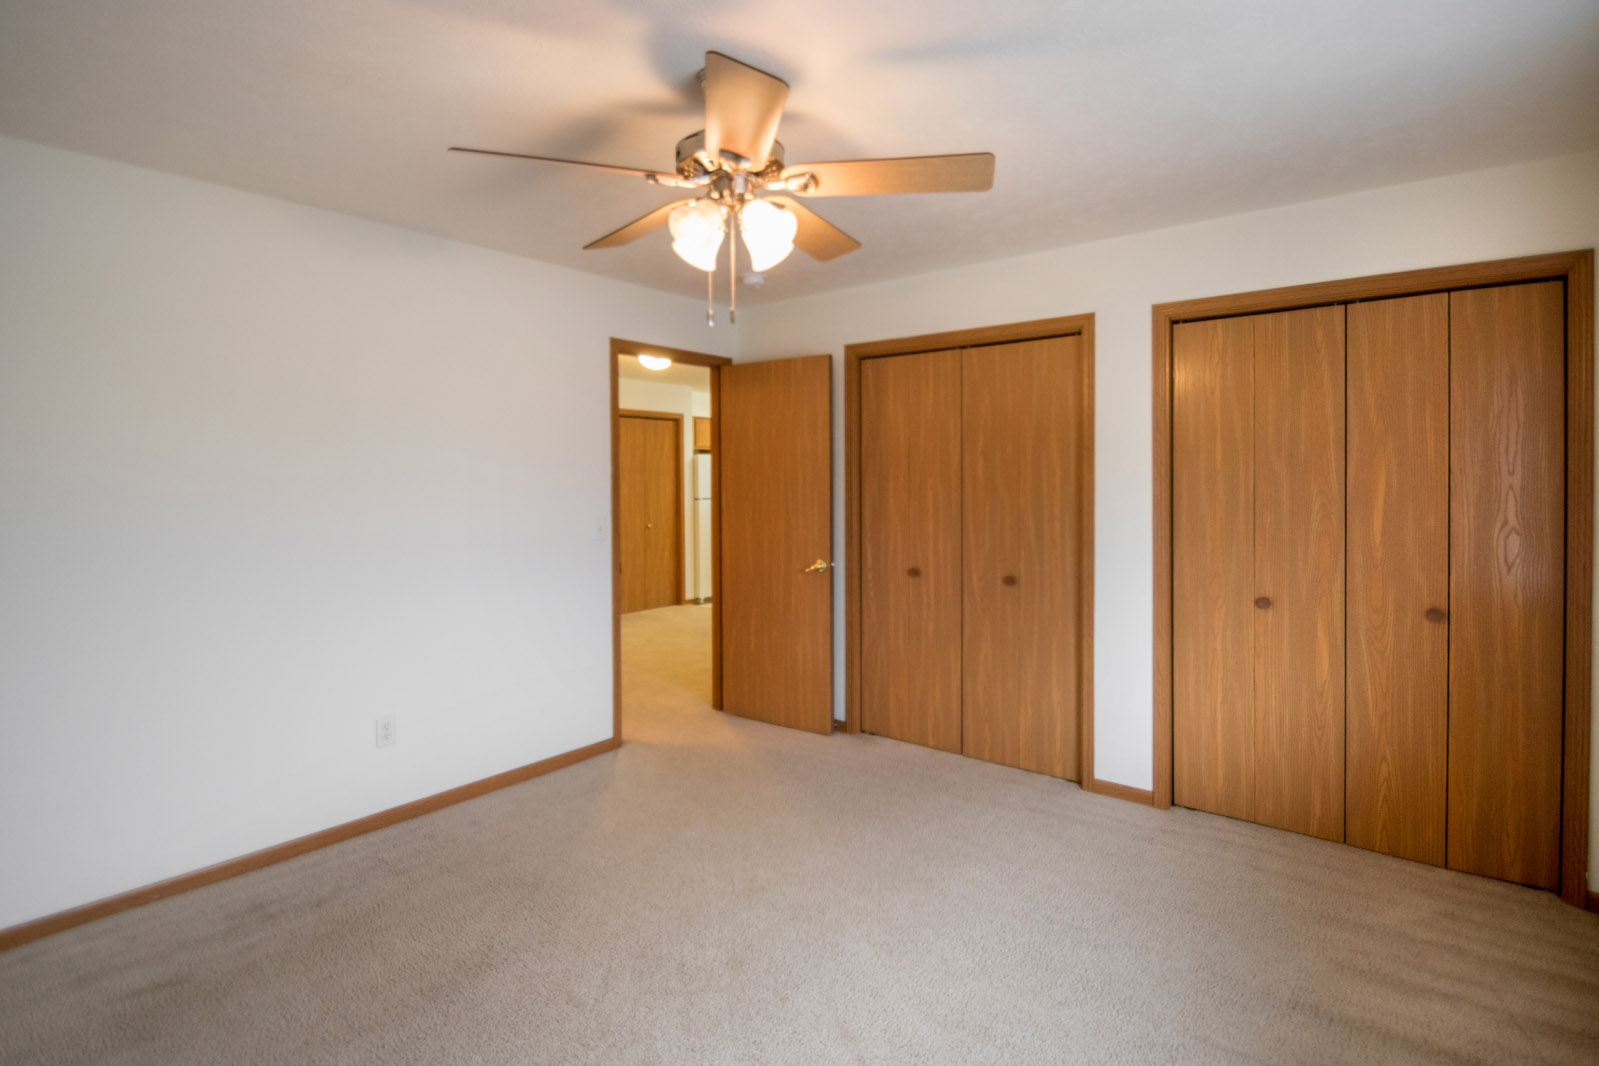 Excessive Closet Space at Northridge Apartments in Gretna, Nebraska